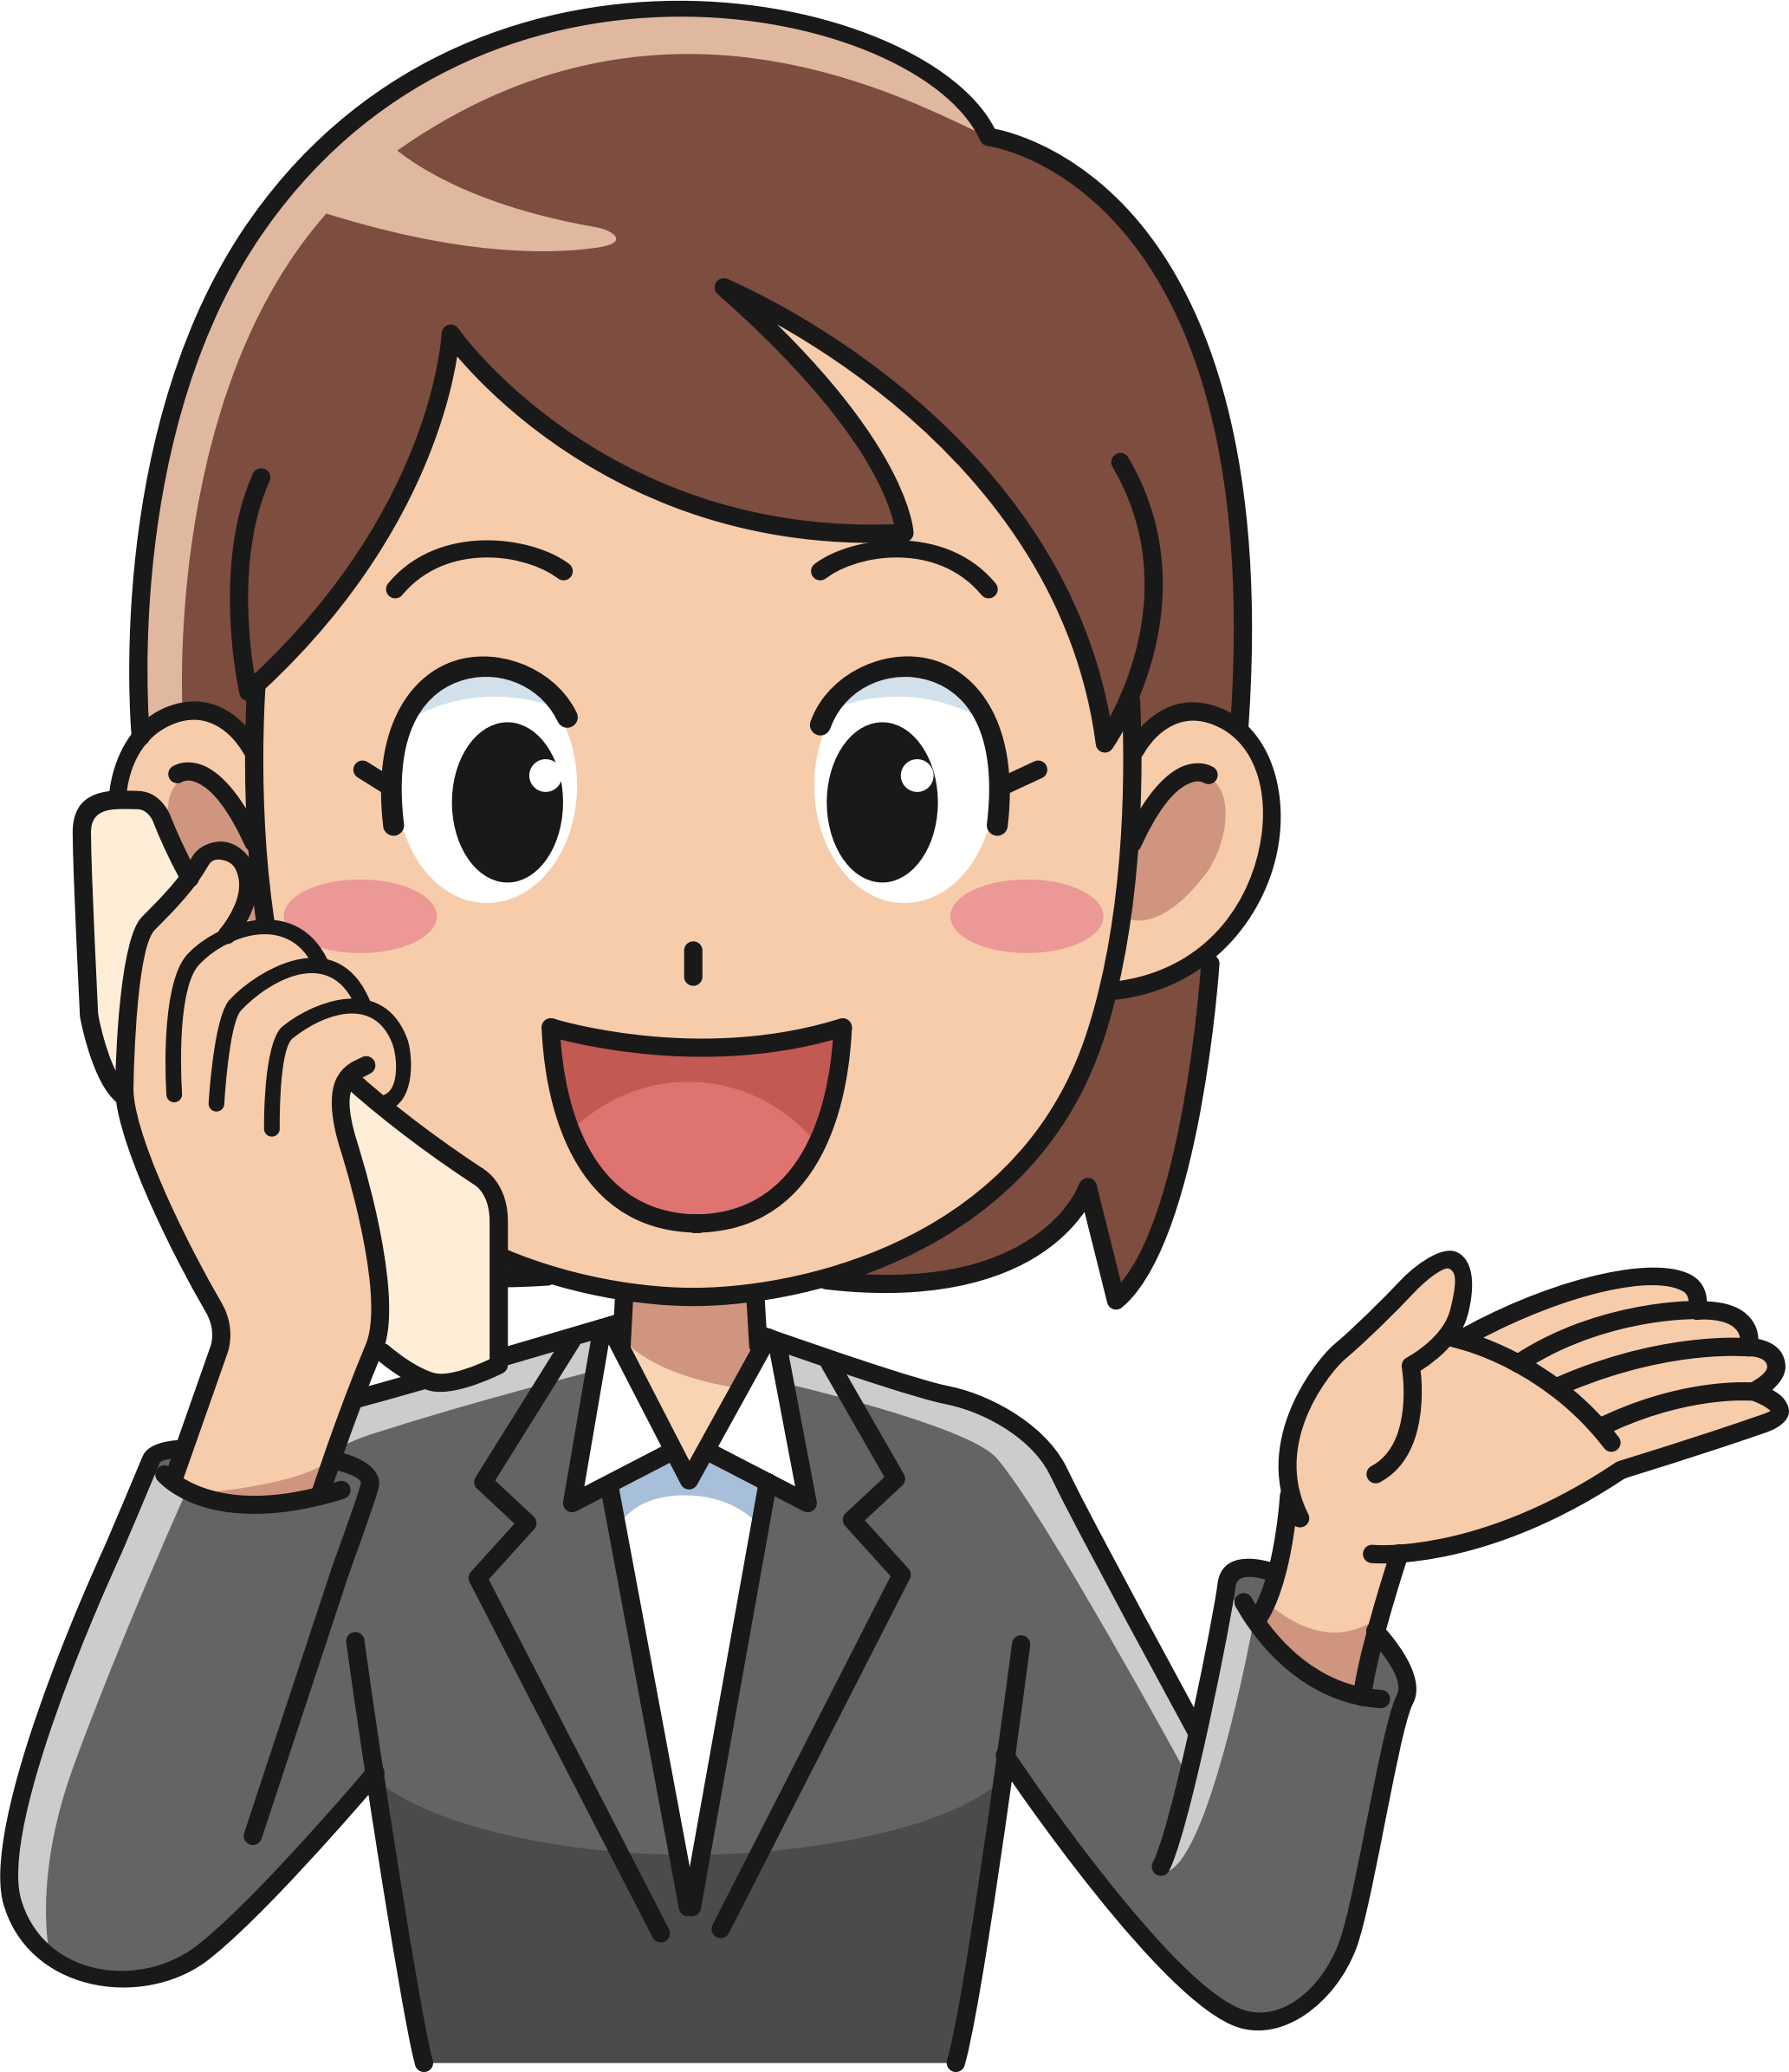 Telephone clipart female person. Using big image png